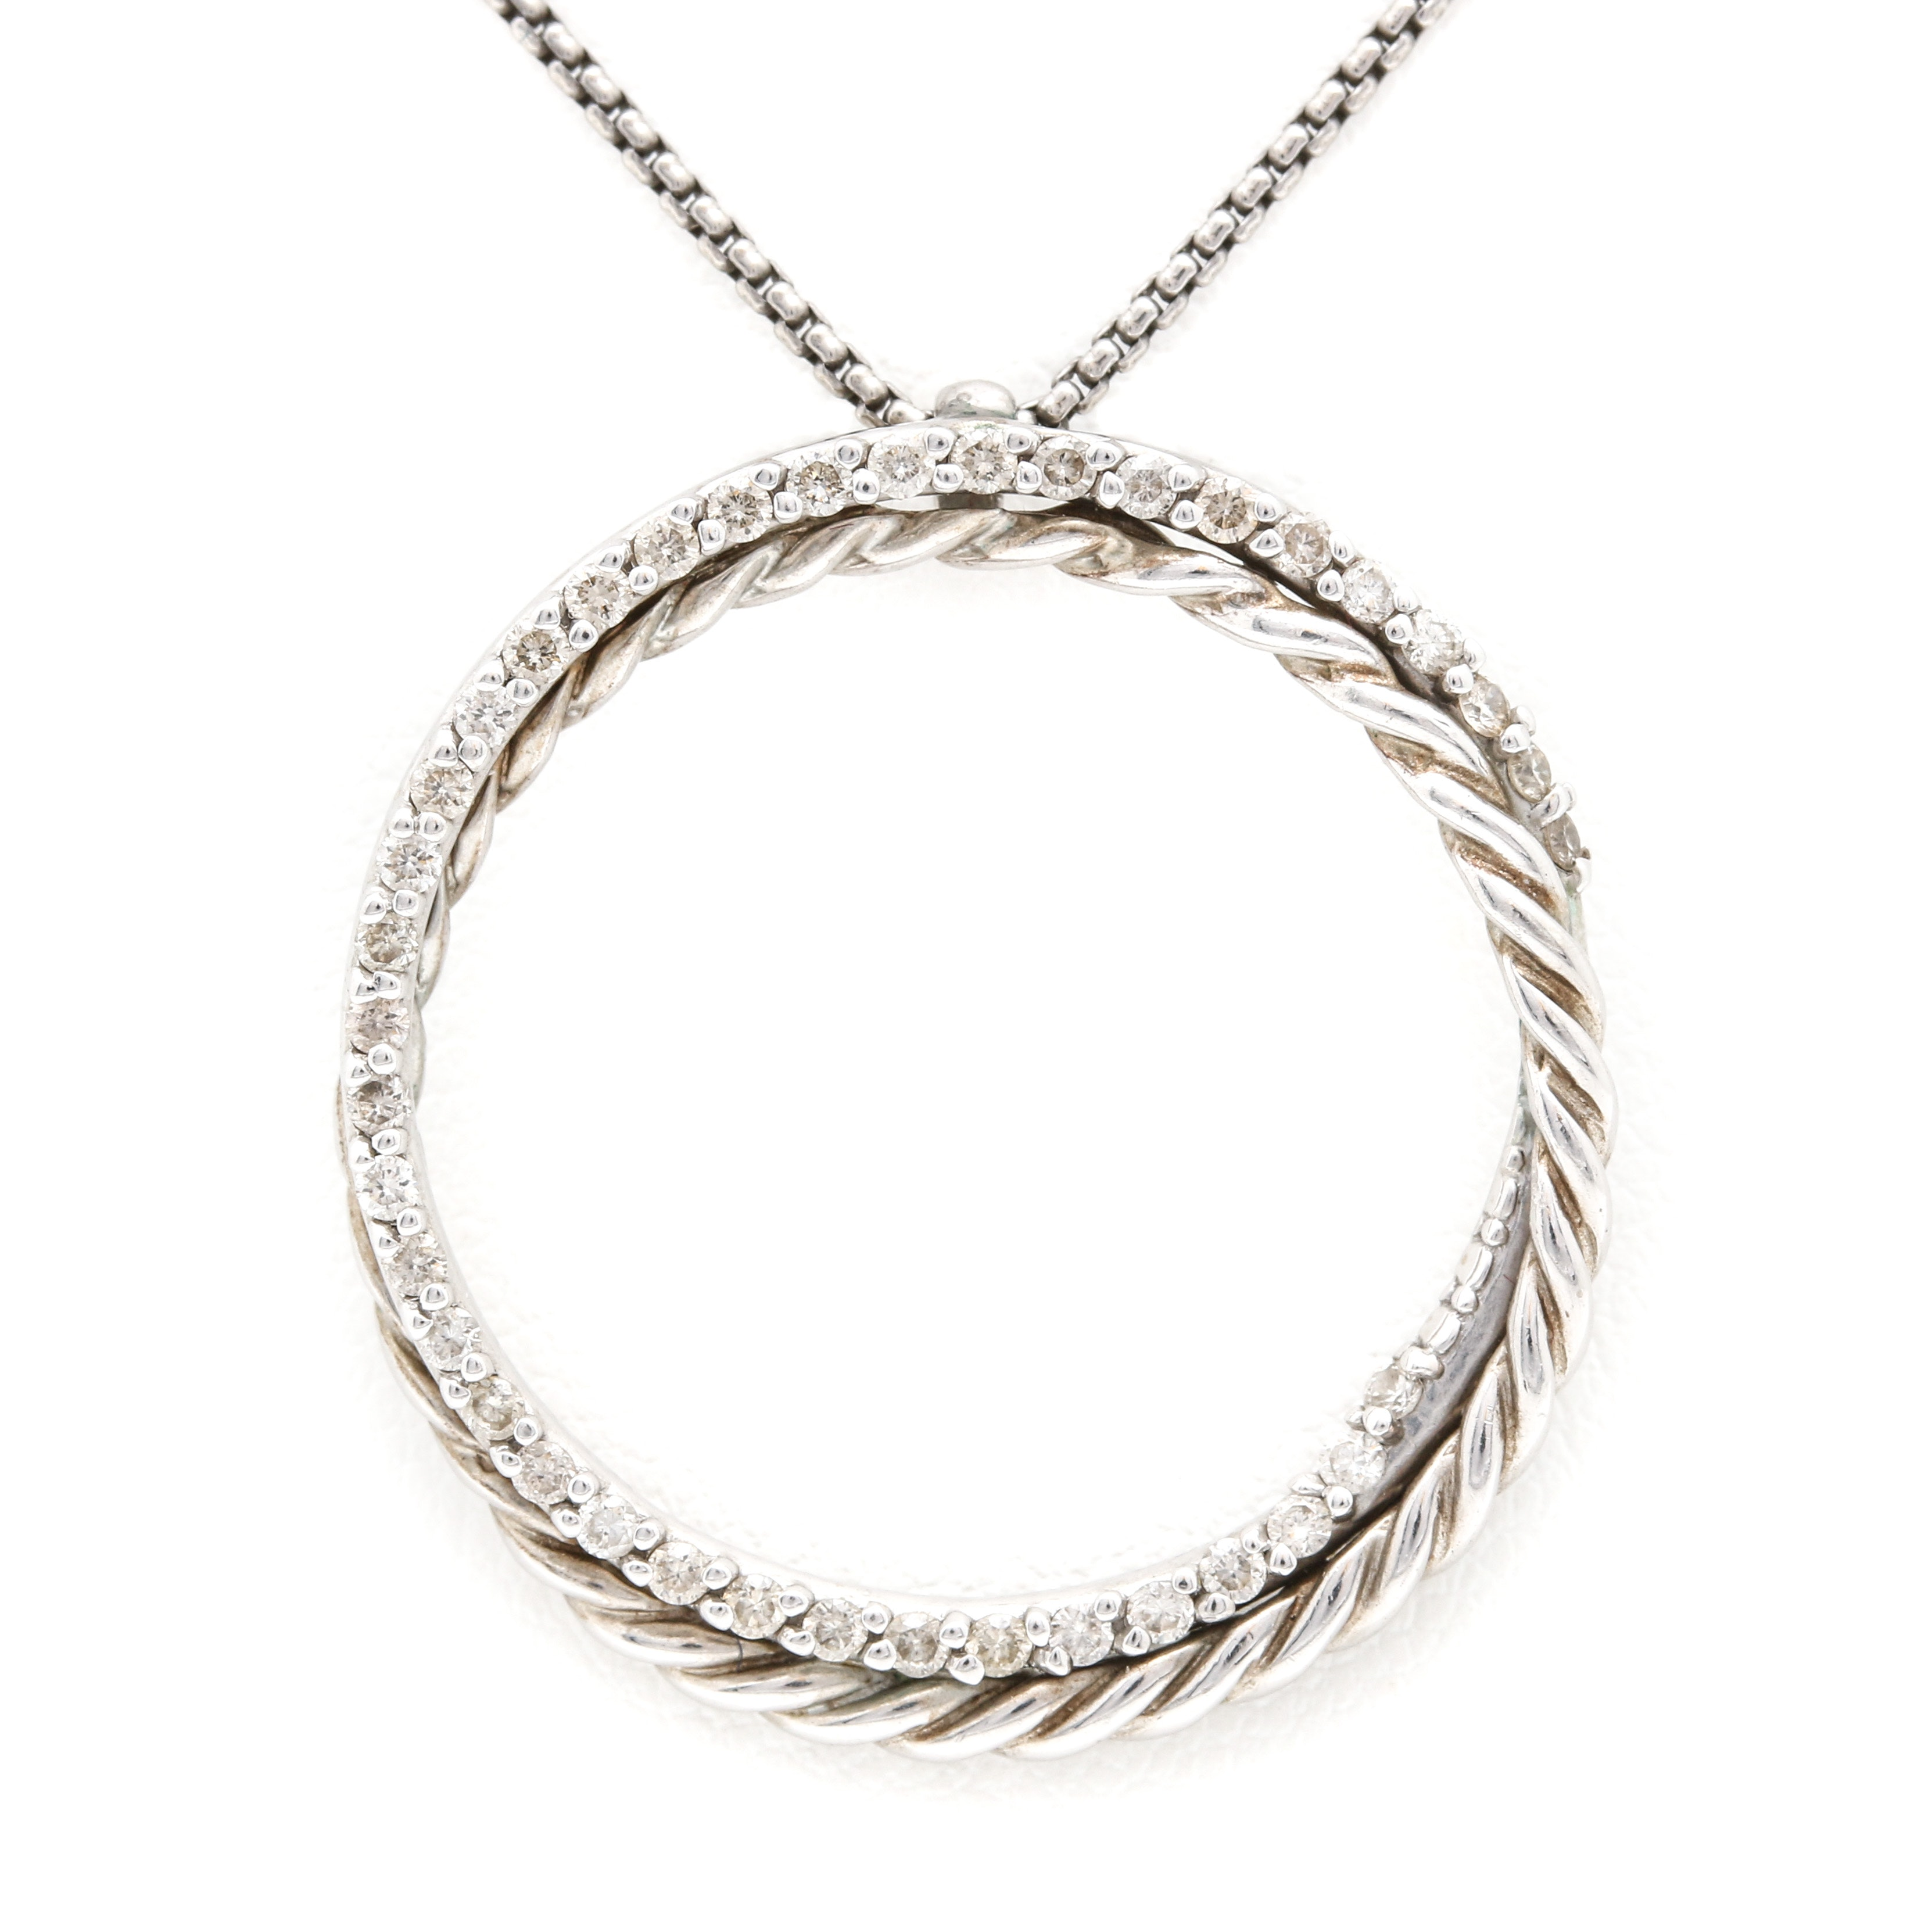 David Yurman Sterling Necklace with 18K White Gold and Diamond Eternity Pendant